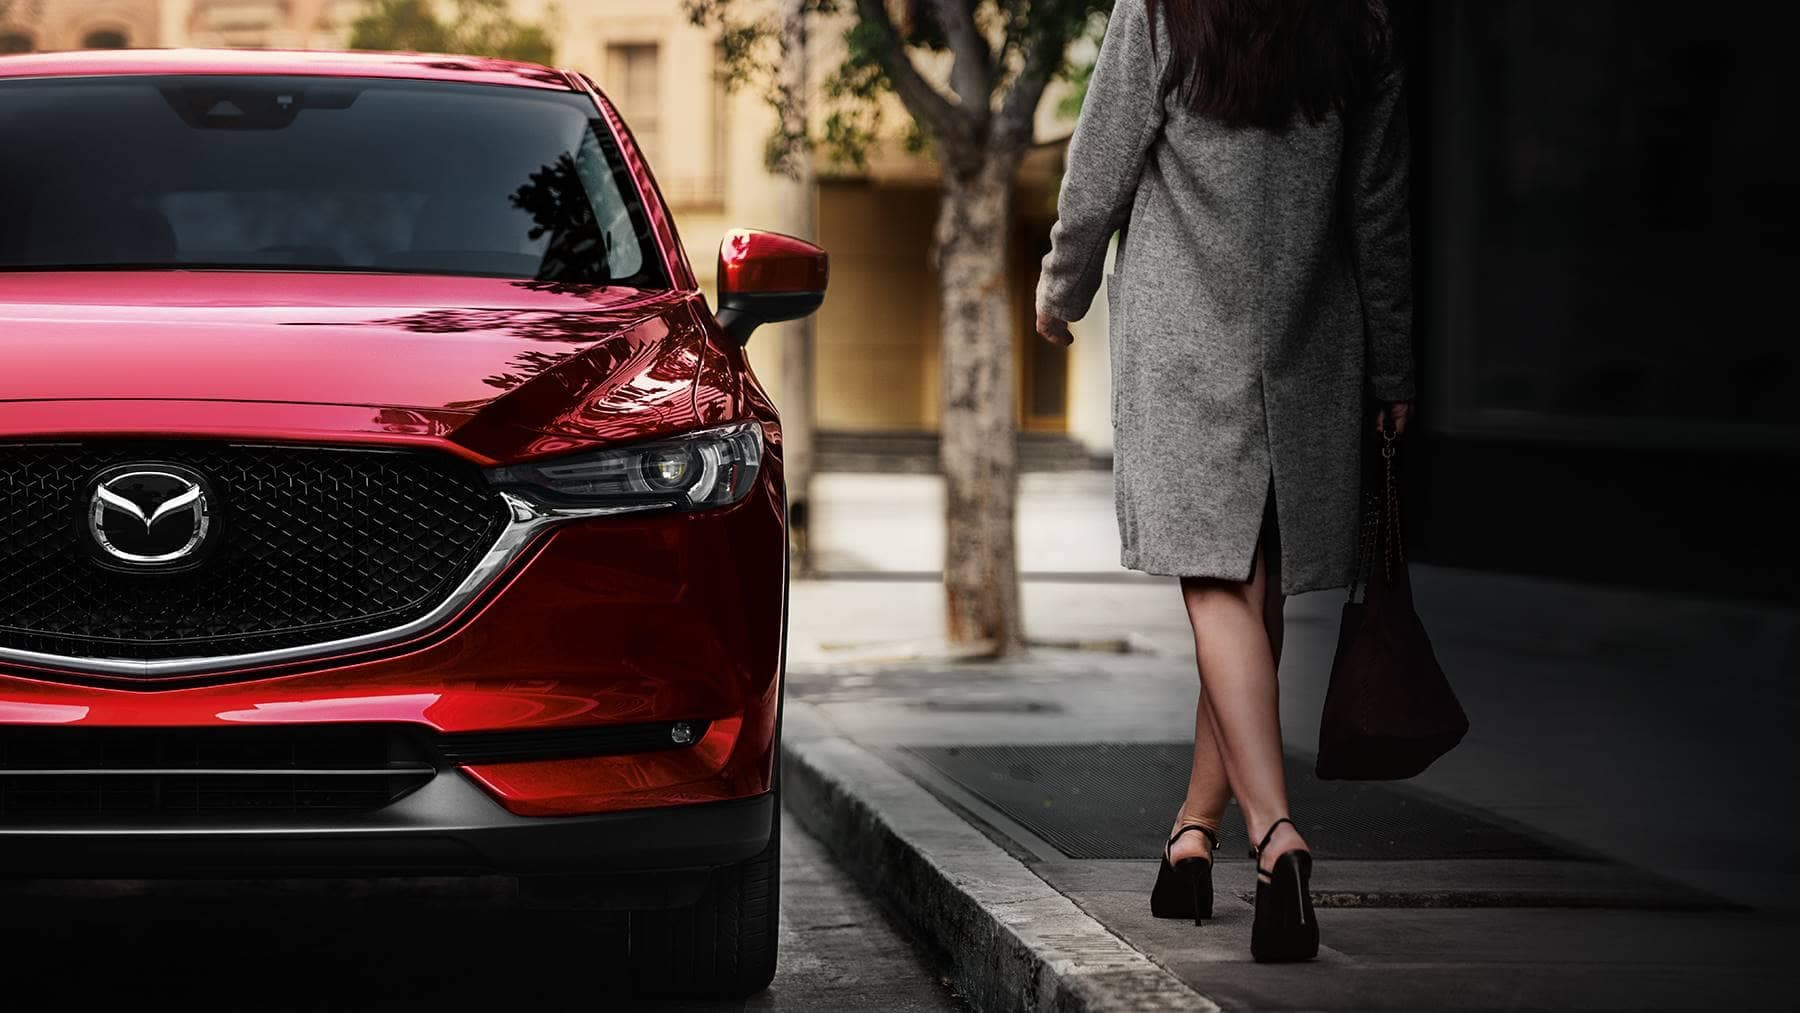 2018 Mazda CX-5 crossover front grille